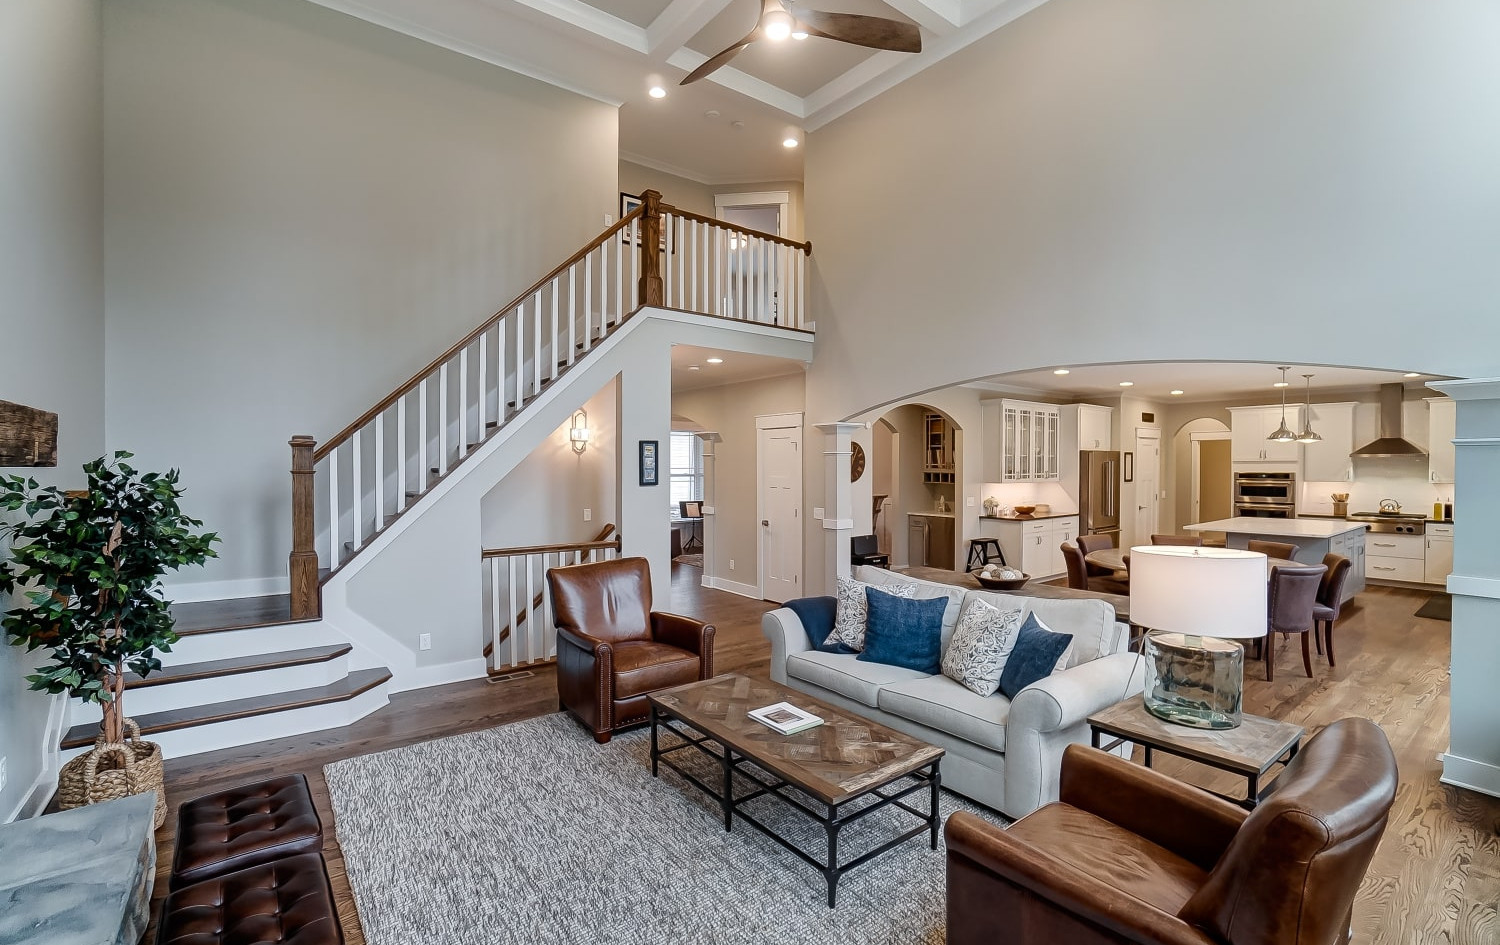 Staircase leading to bedrooms in a single family house planned by Ashford Homes